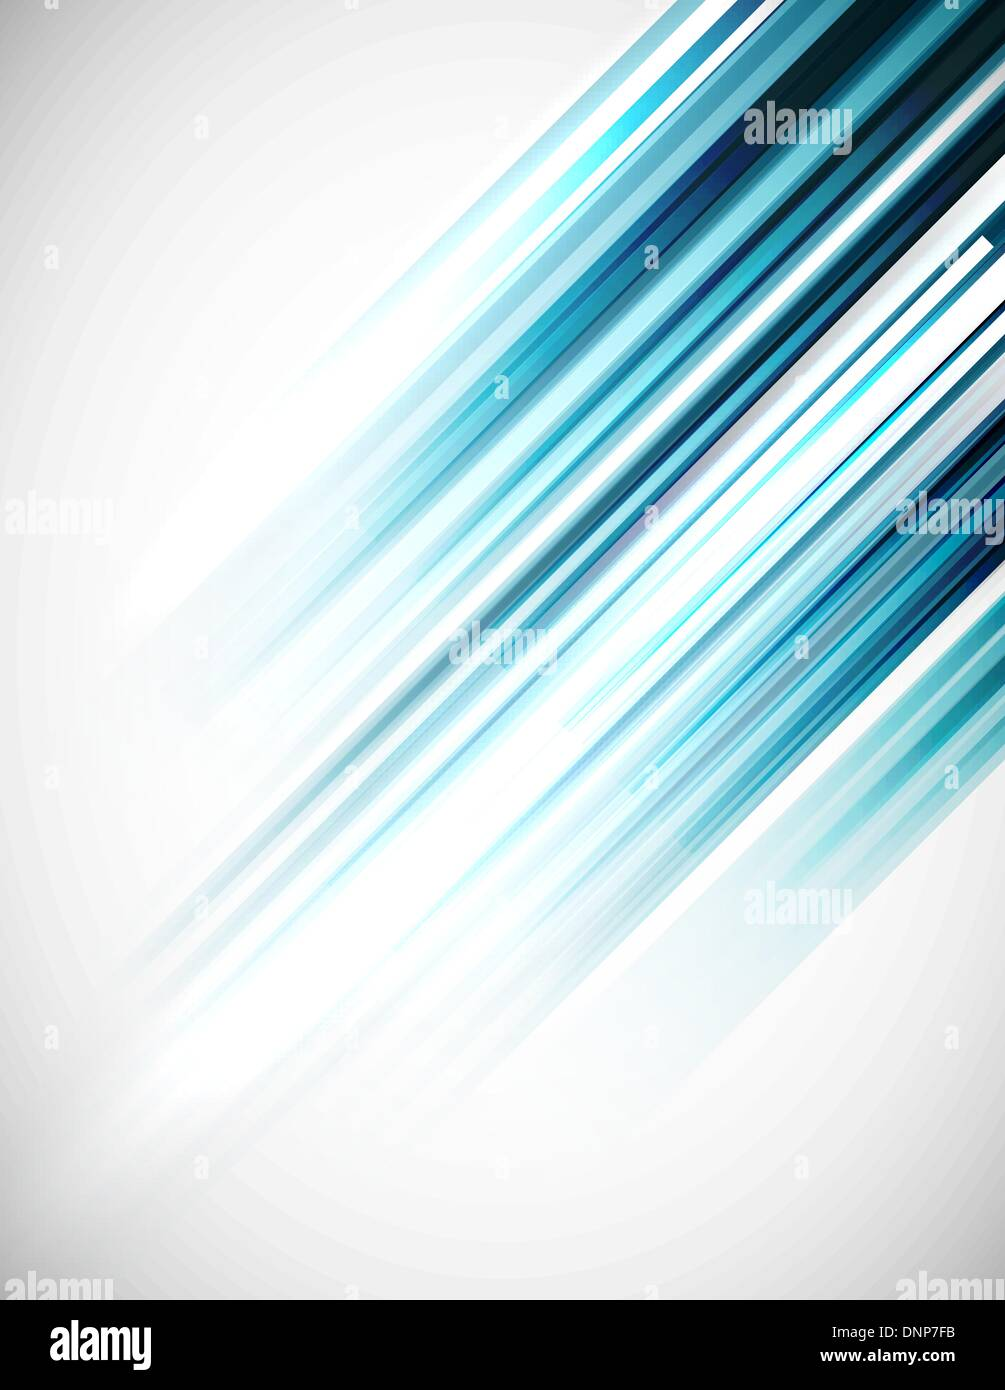 Blue abstract background vector lignes droites Illustration de Vecteur